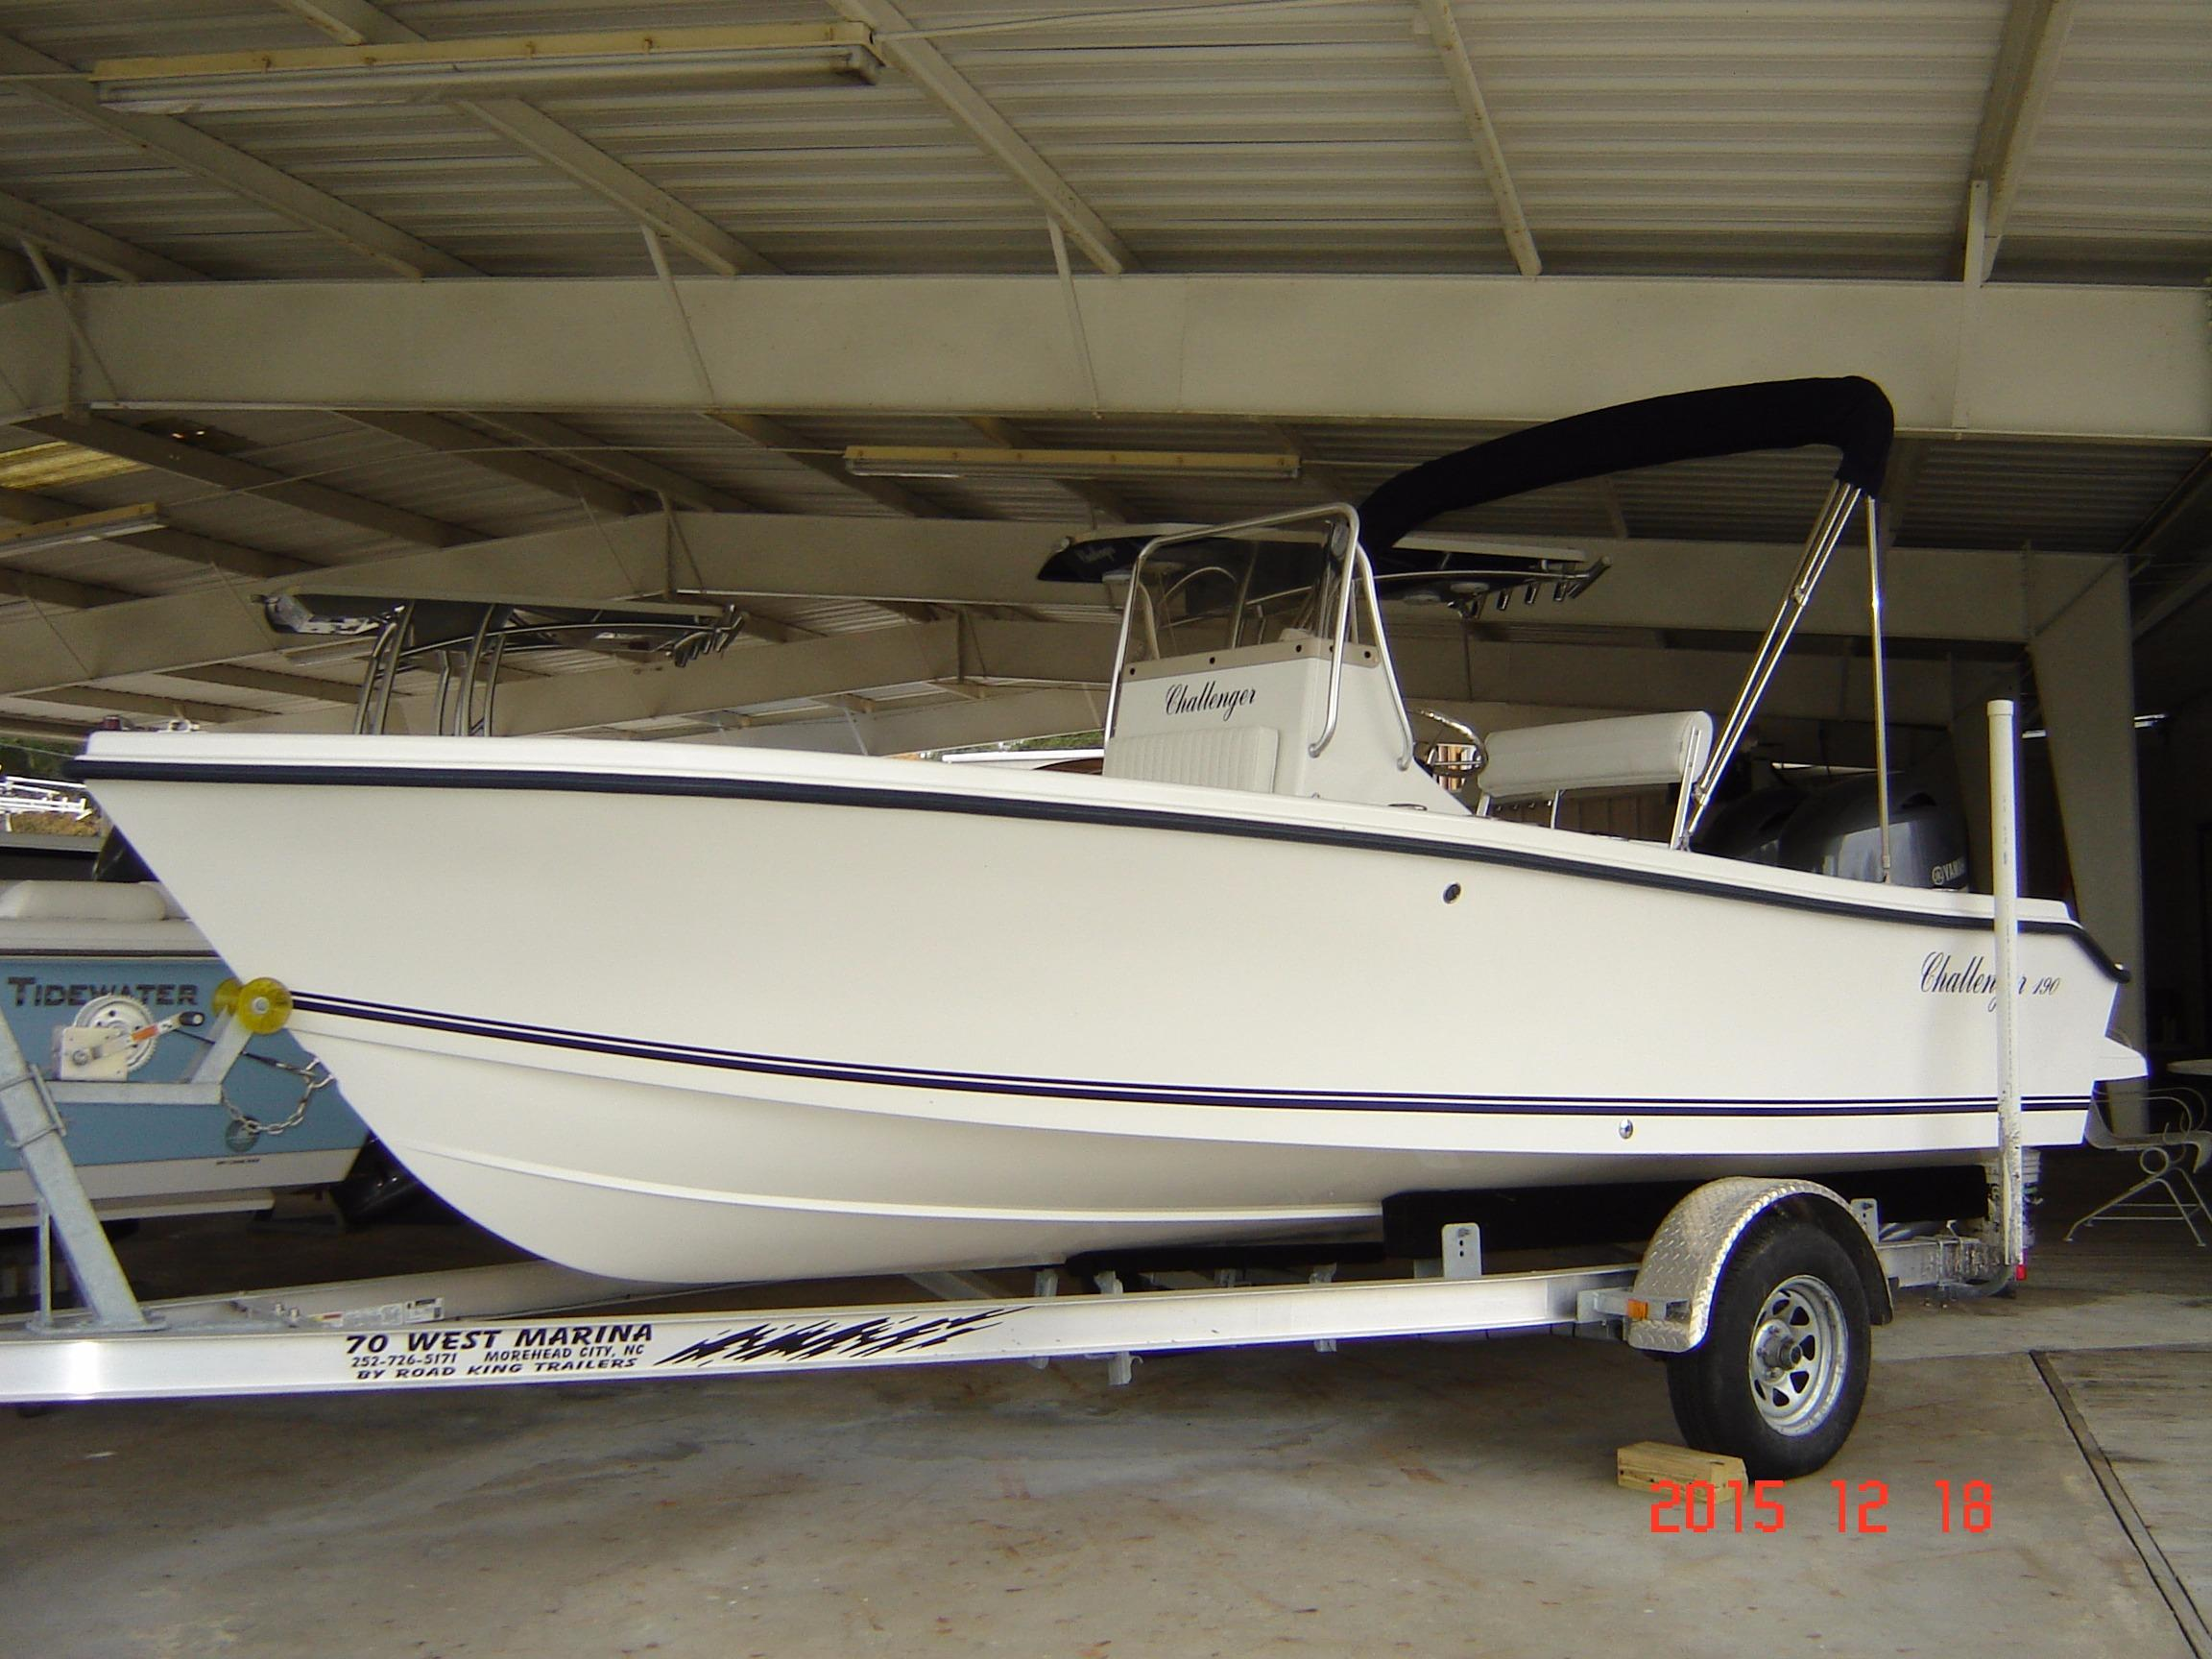 Boats Craigslist U S Cities - Year of Clean Water